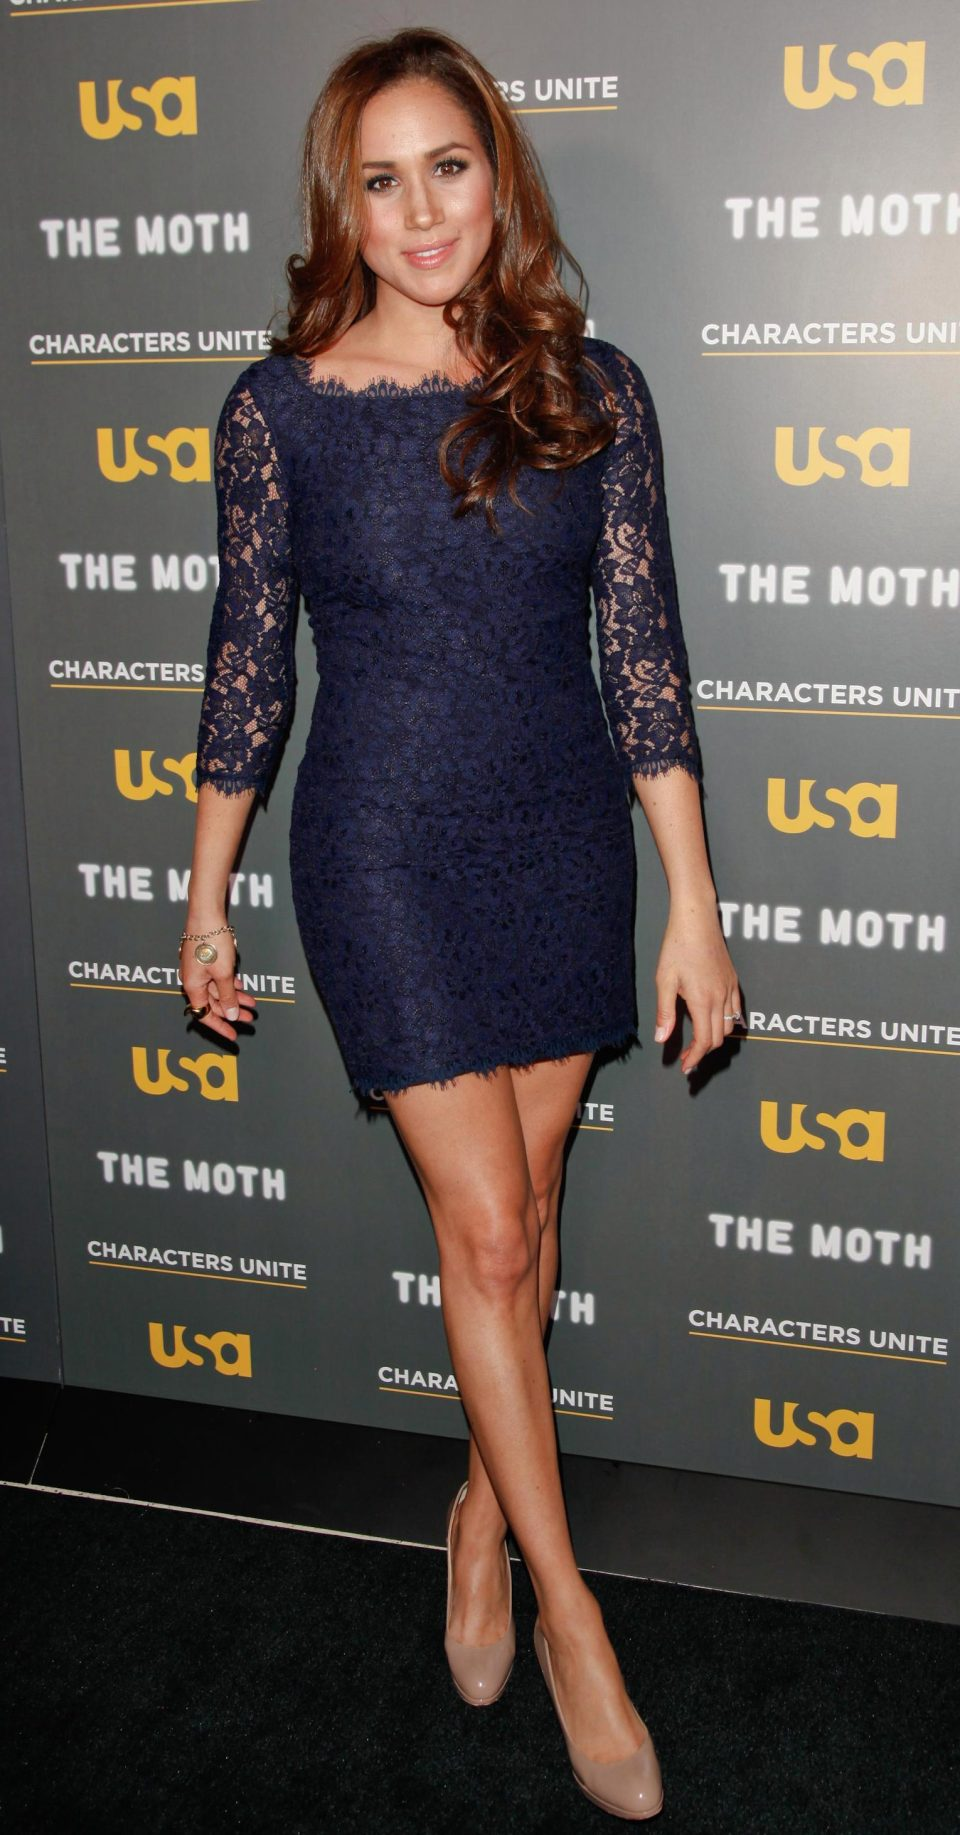 The Suits star has previously been spotted on the red carpet in above-the-knee dresses